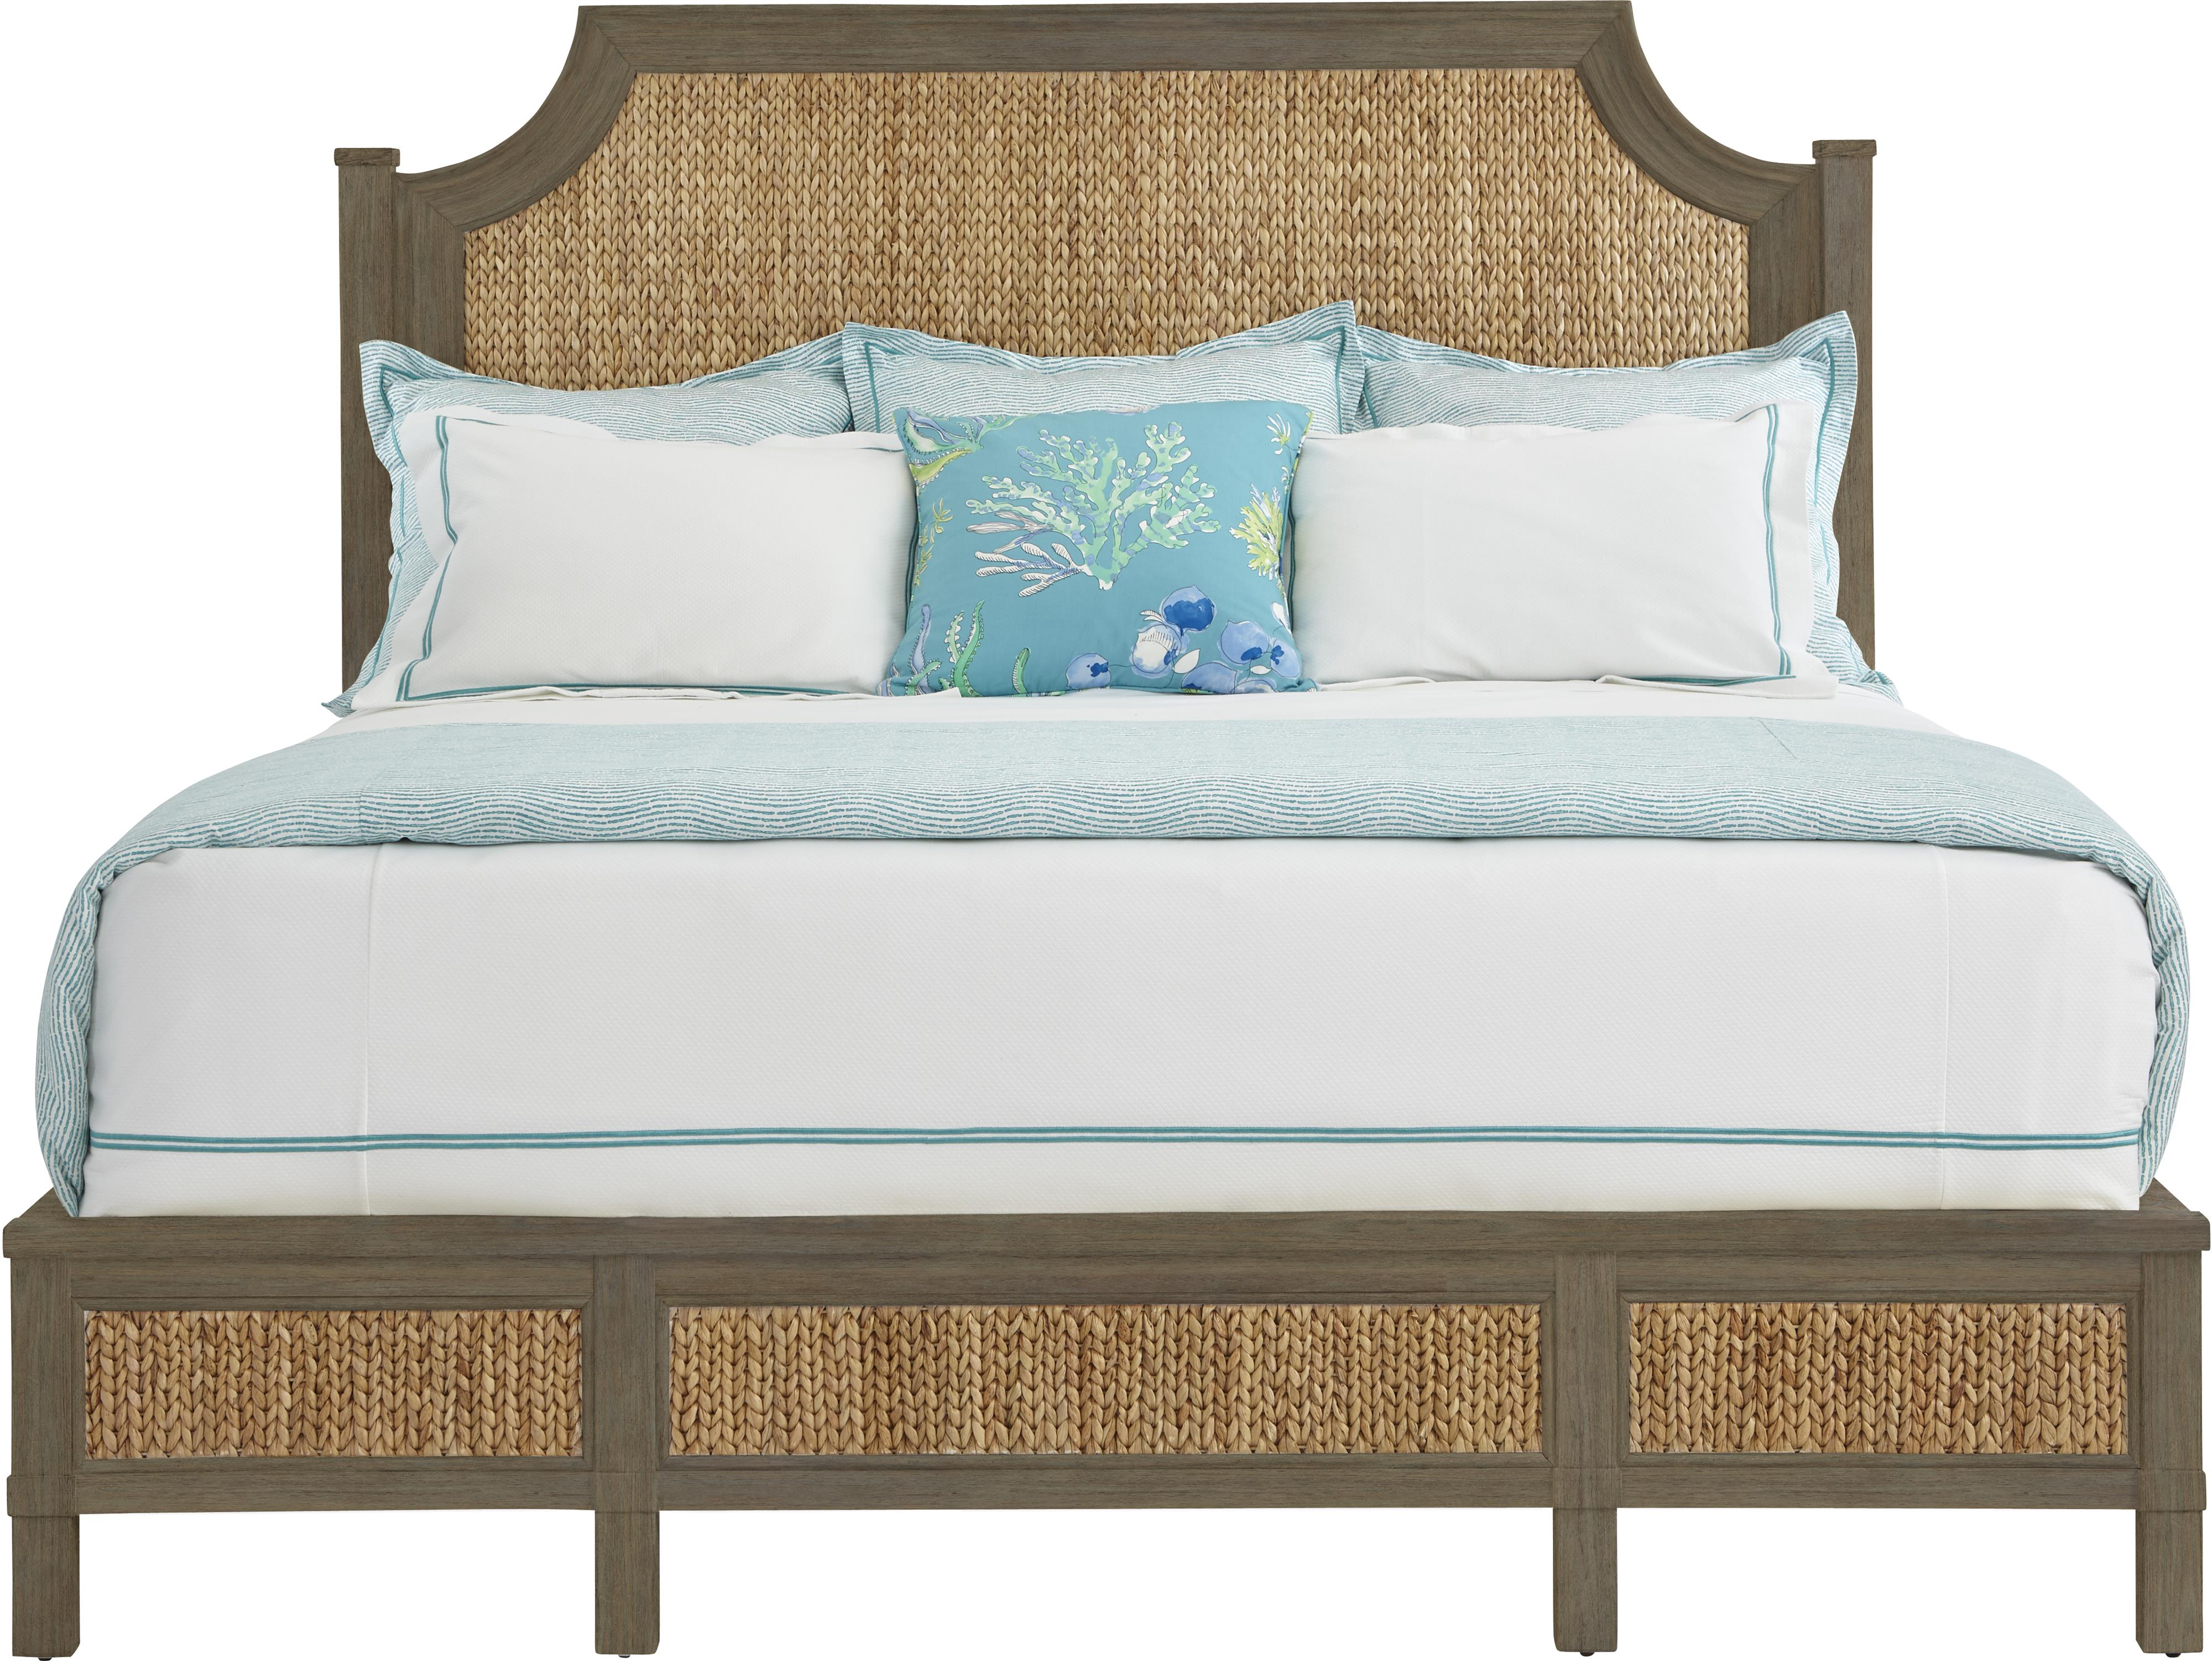 Stanley Furniture Coastal Living Resort King Water Meadow Woven Bed - Item Number: 062-33-46